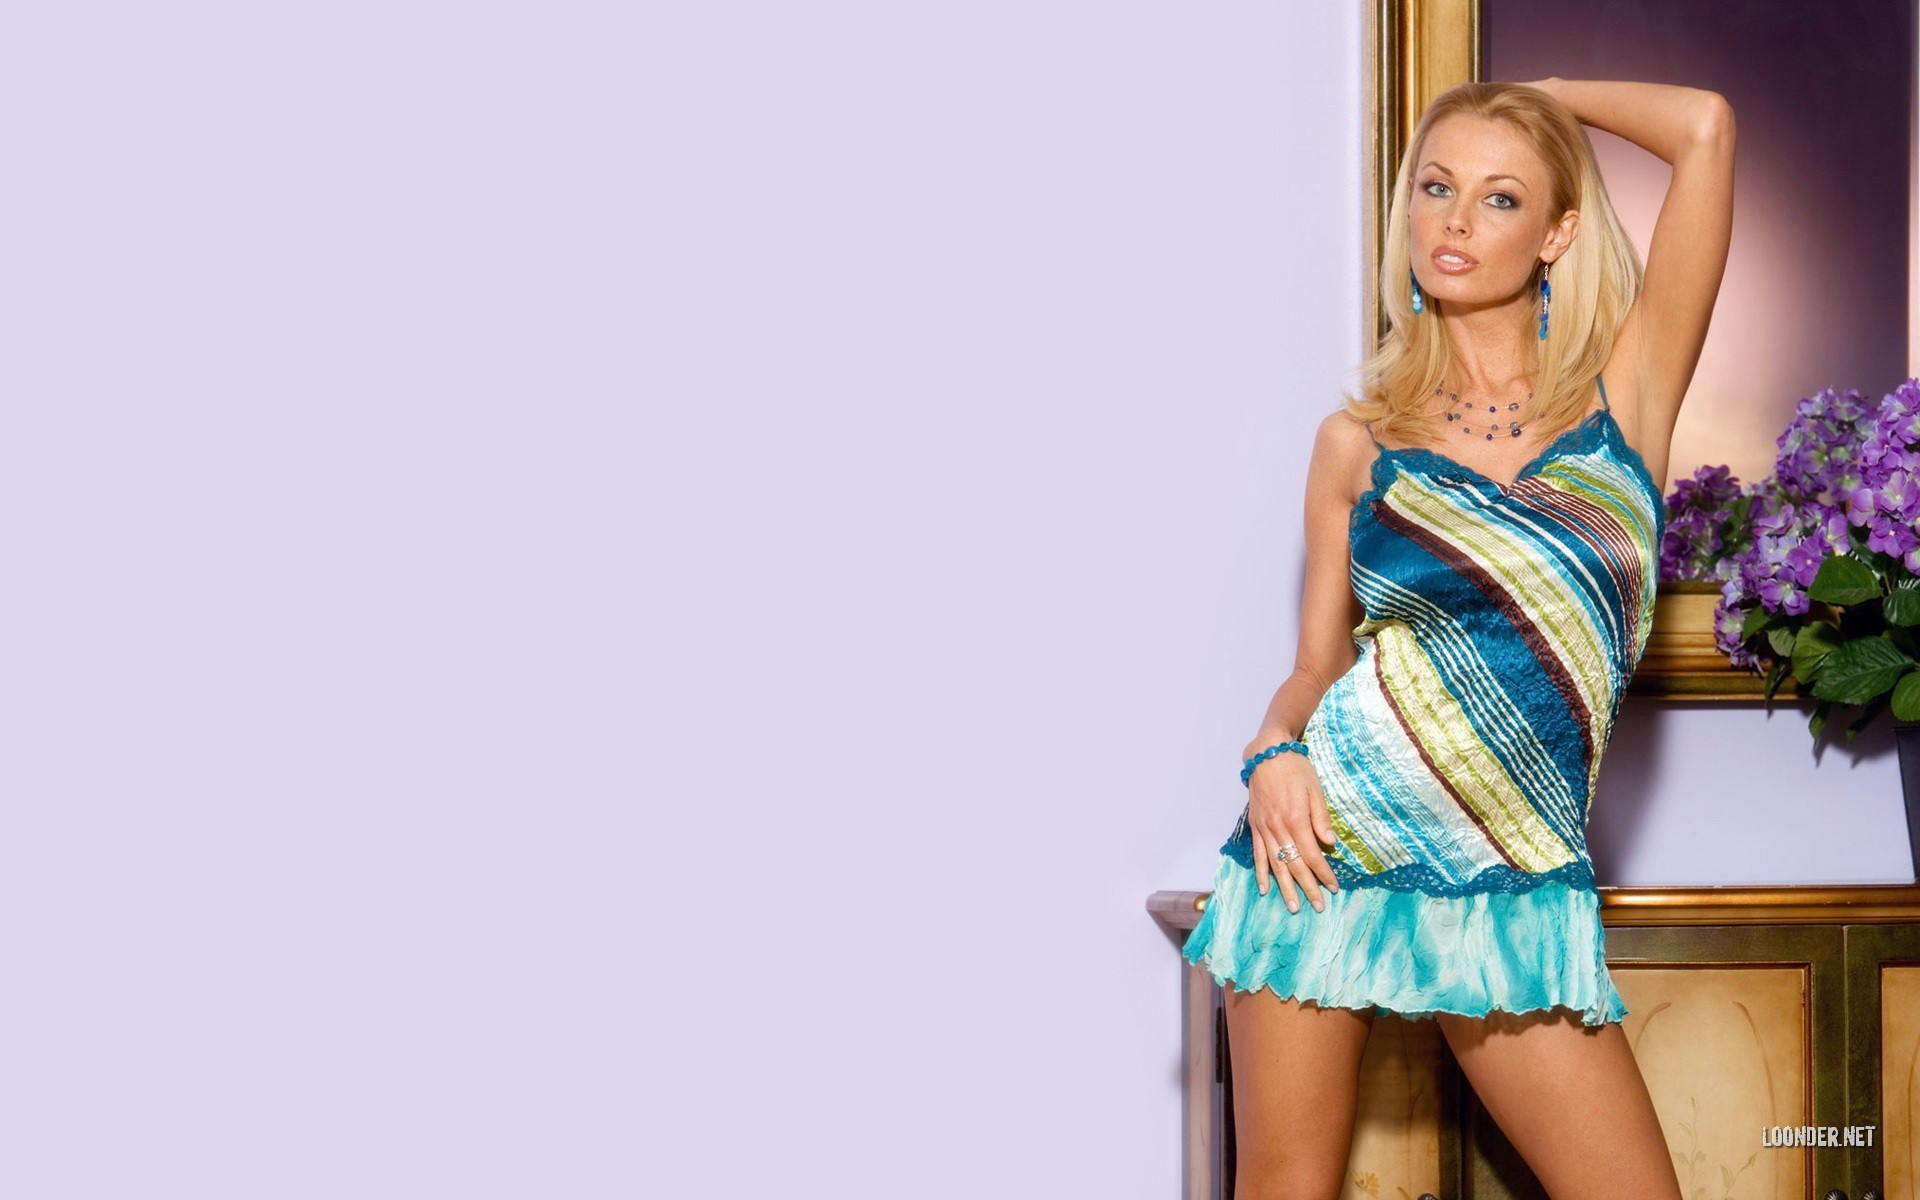 blondes woman dress Anita HD Wallpaper